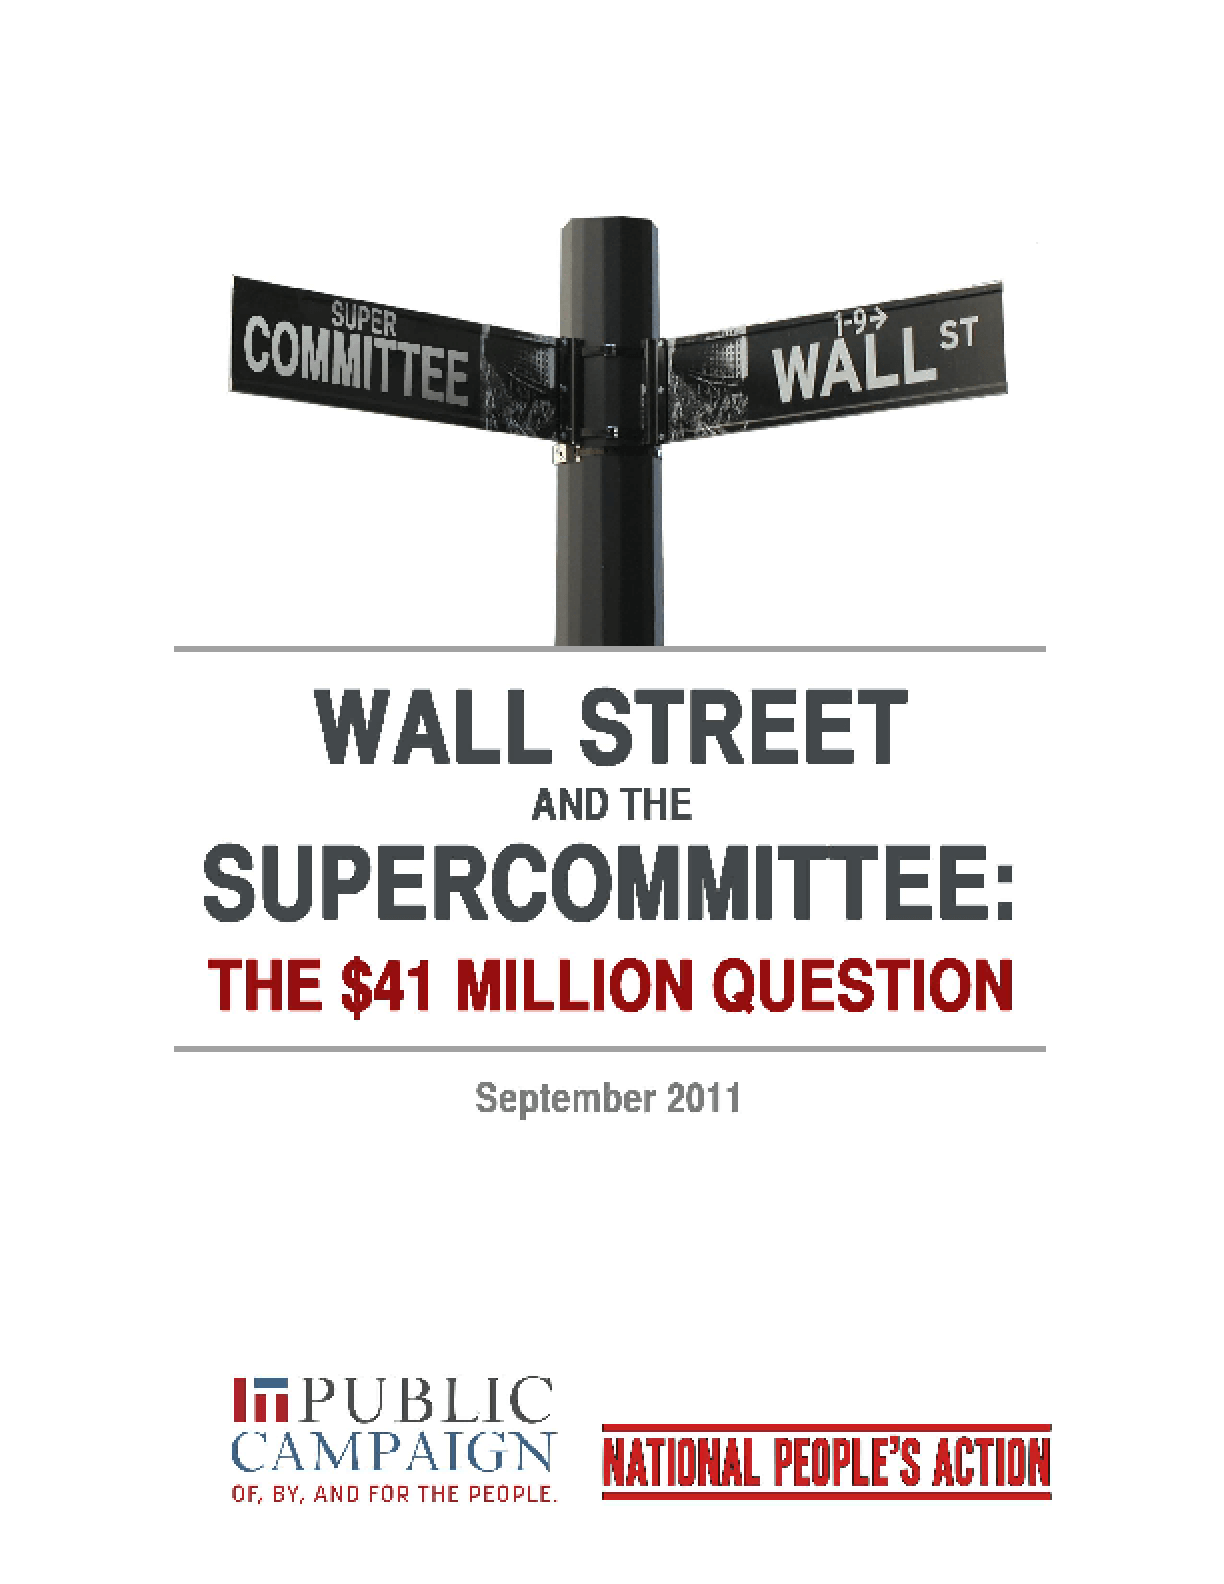 Wall Street and the Supercommittee: The $41 Million Question